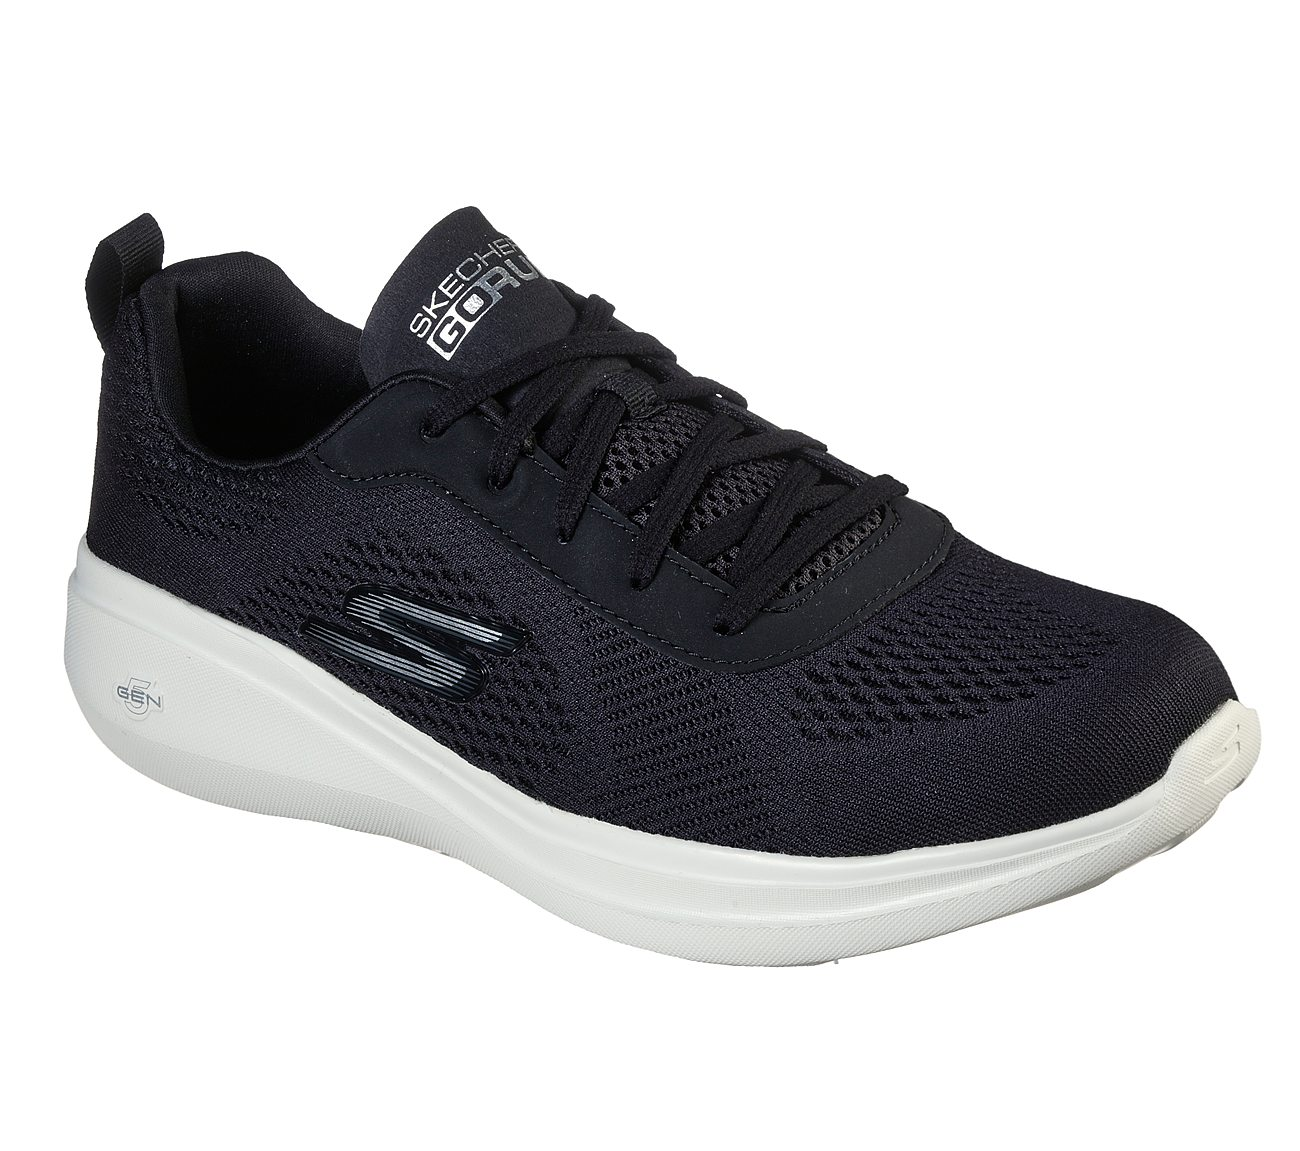 SKECHERS Go Run Fast Quake MAN'S RUNNING SHOES